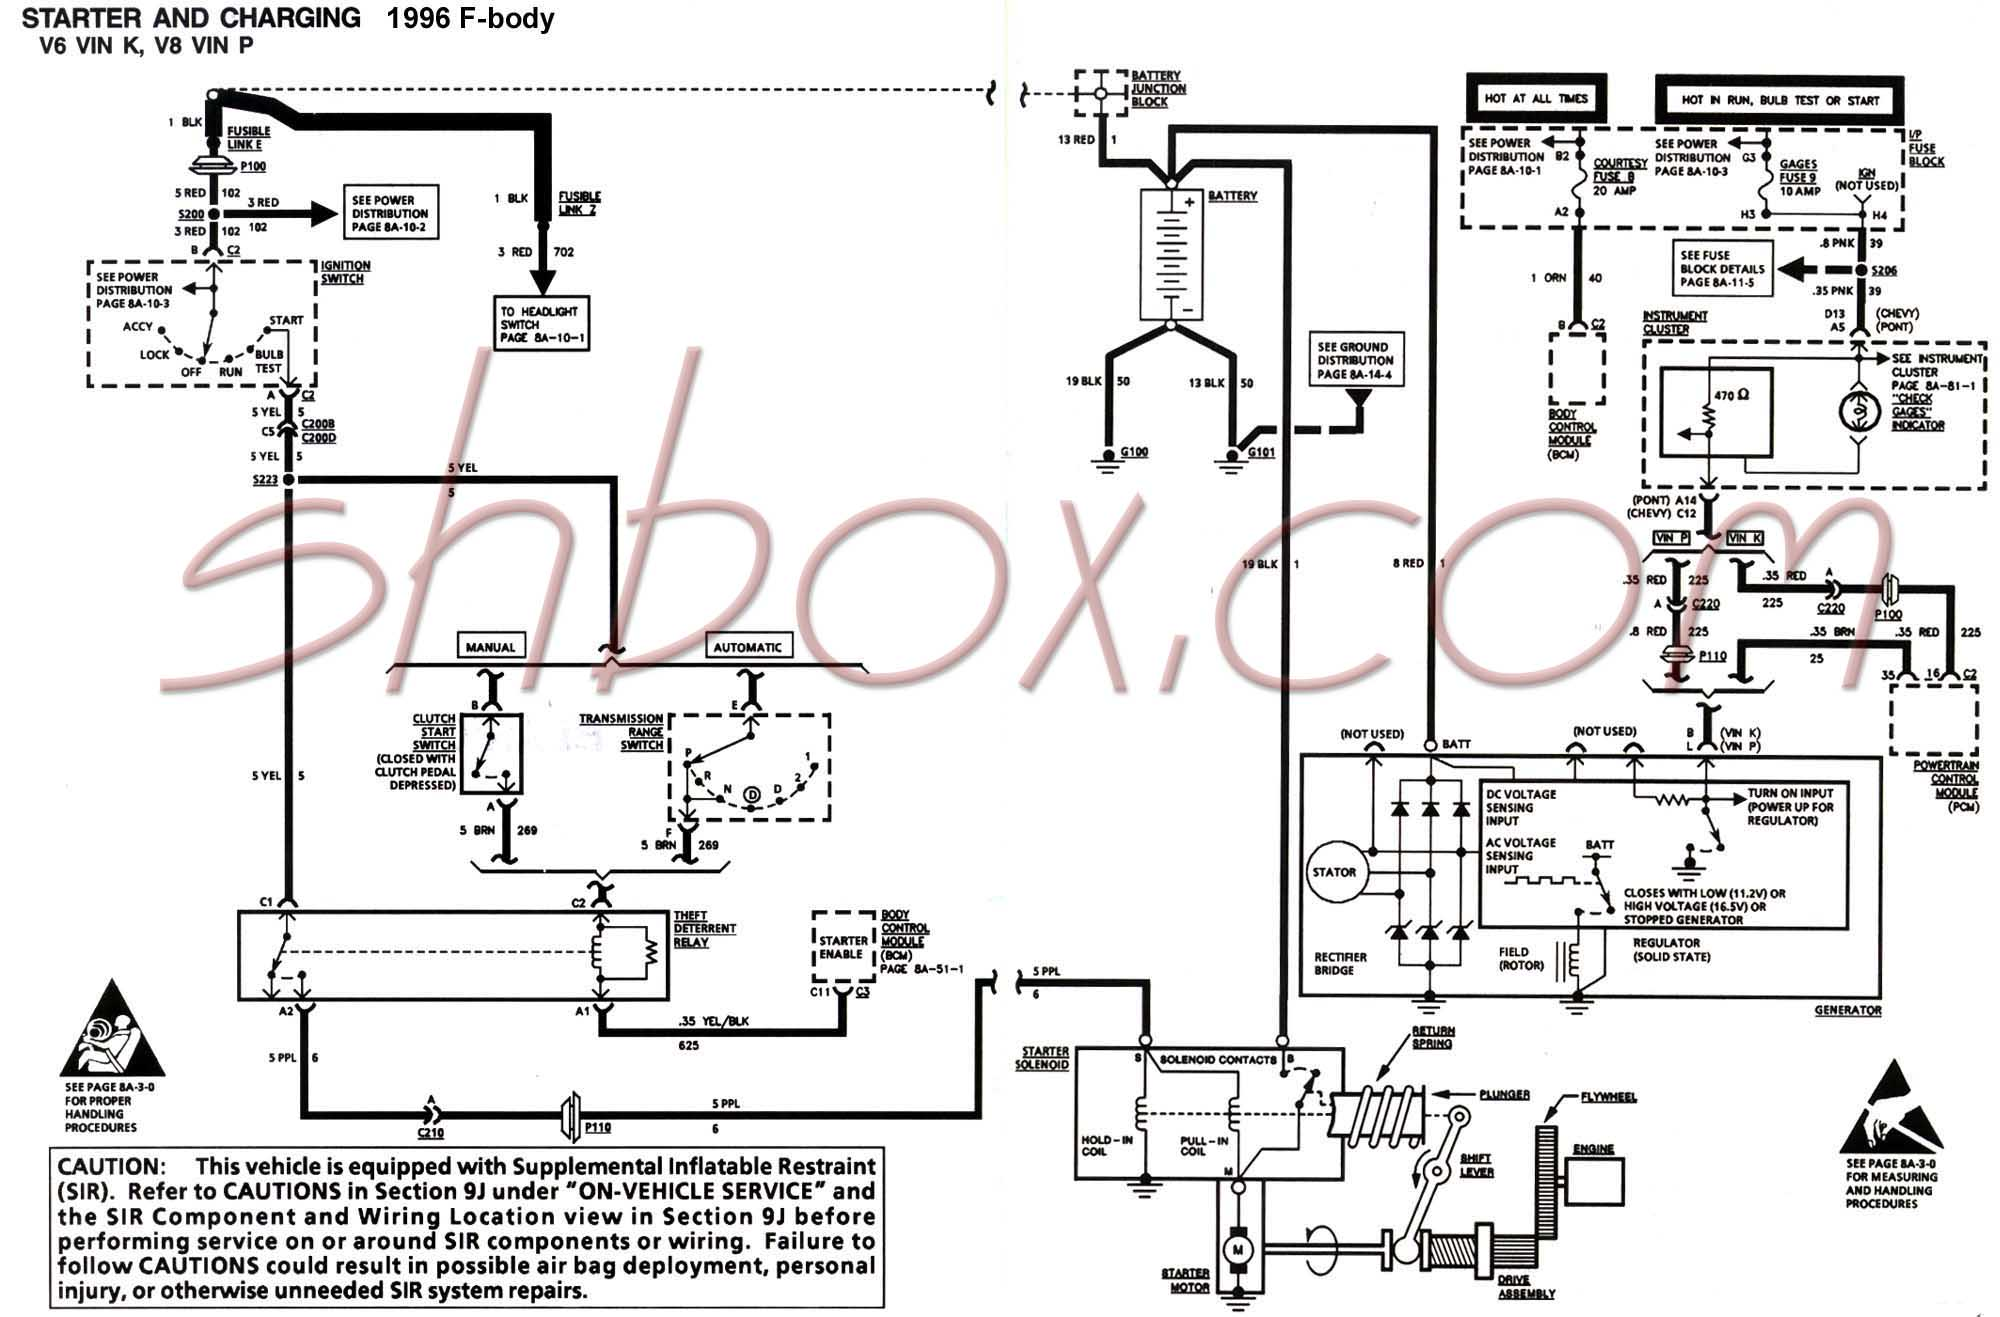 96 Mustang Fuse Box Diagram, 96, Free Engine Image For